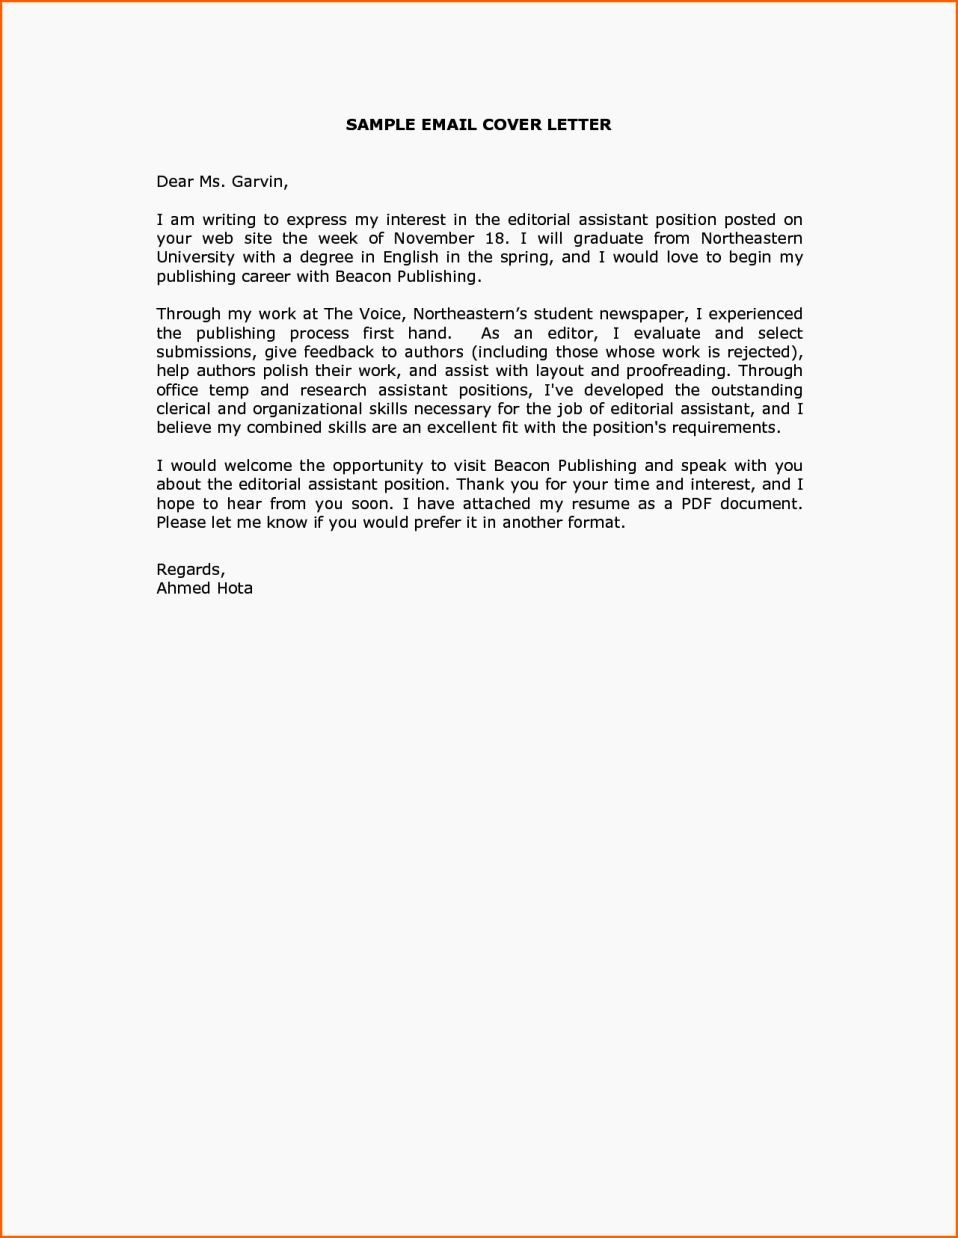 How to Cover Letter Template Awesome Cover Letter Sample Email Message